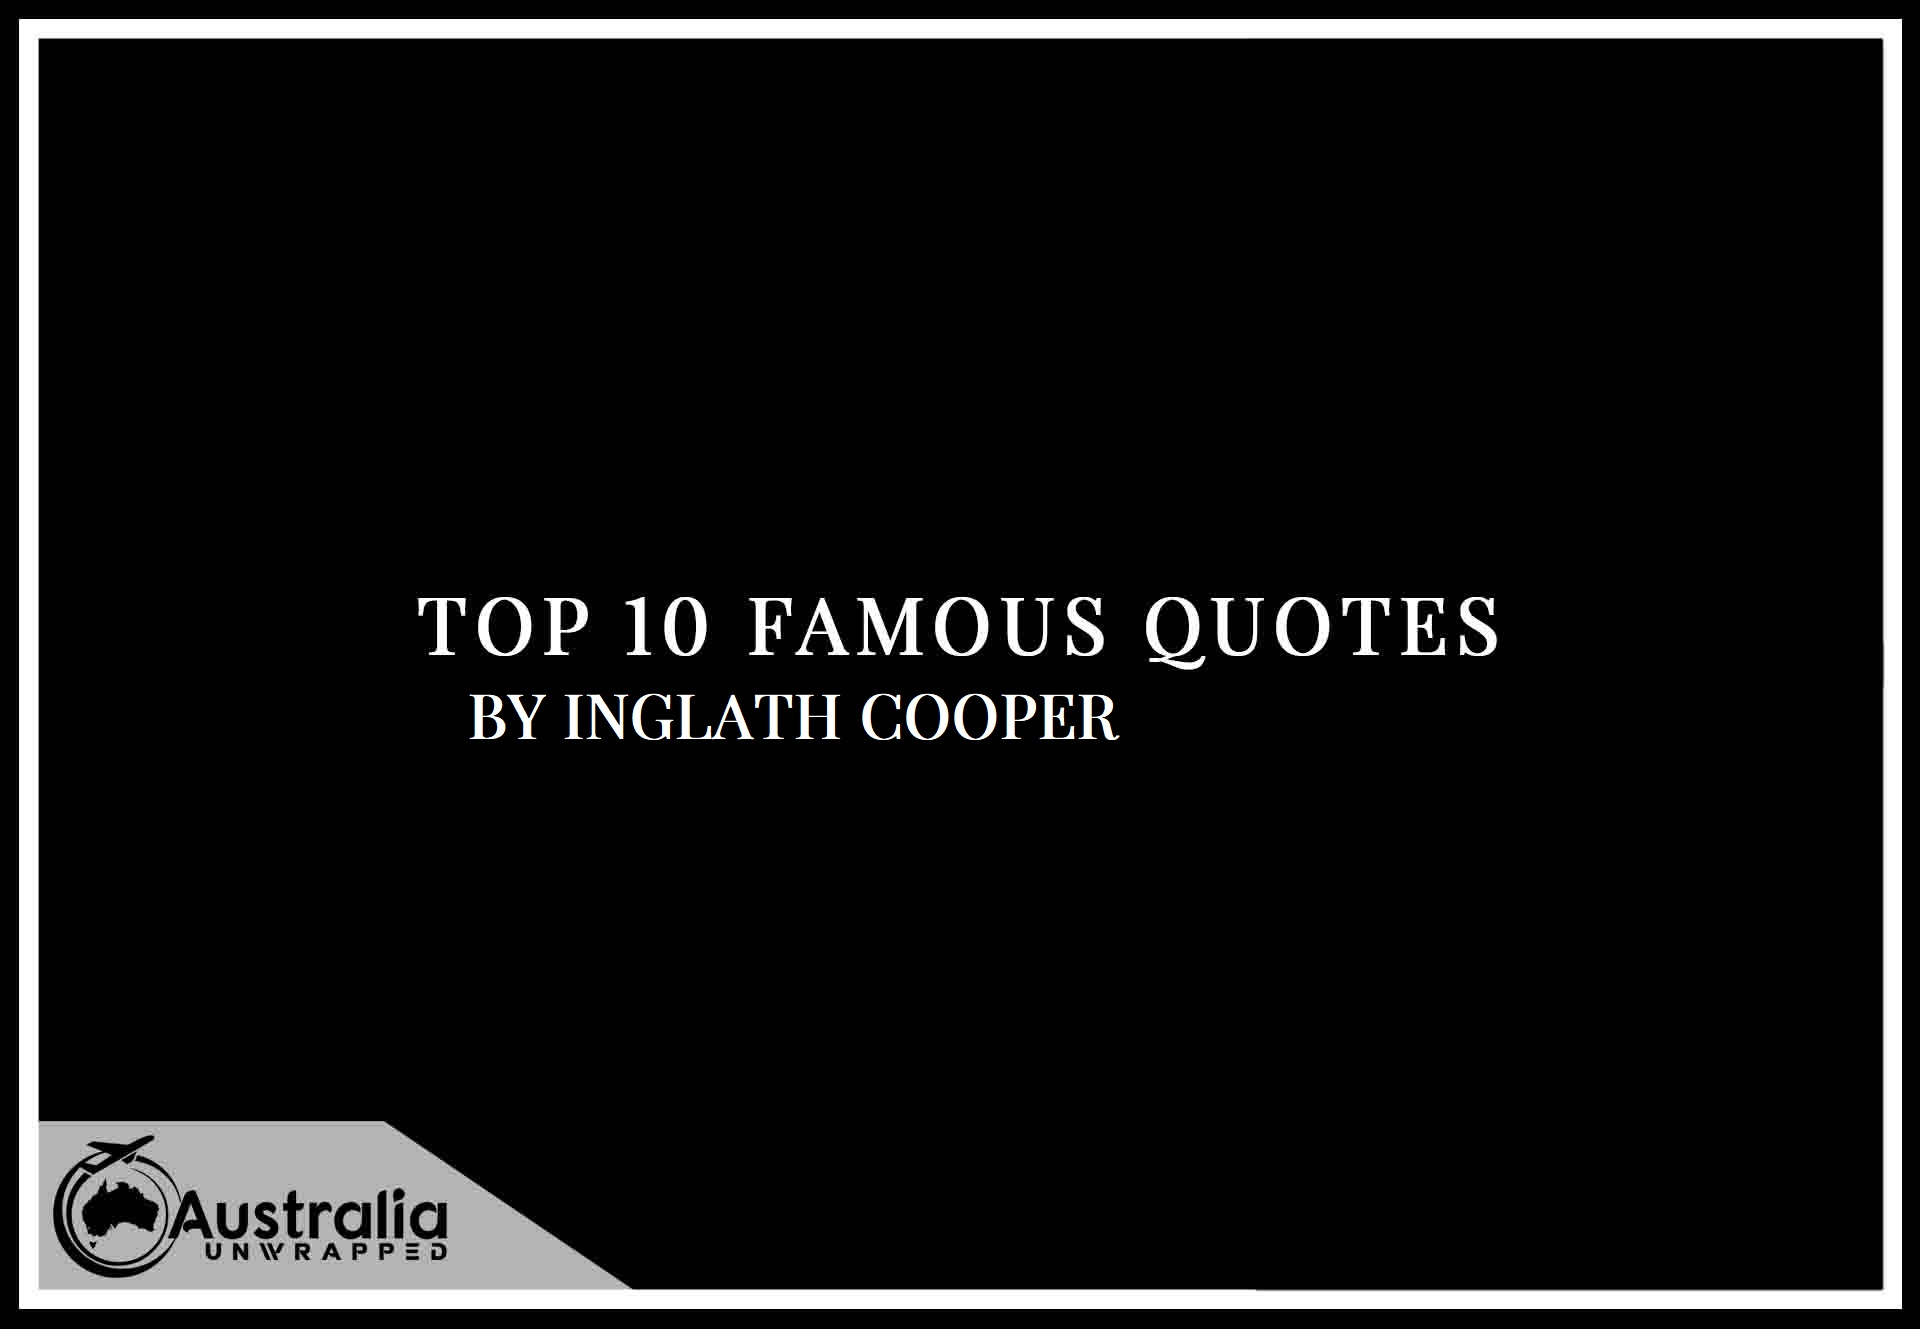 Top 10 Famous Quotes by Author Inglath Cooper